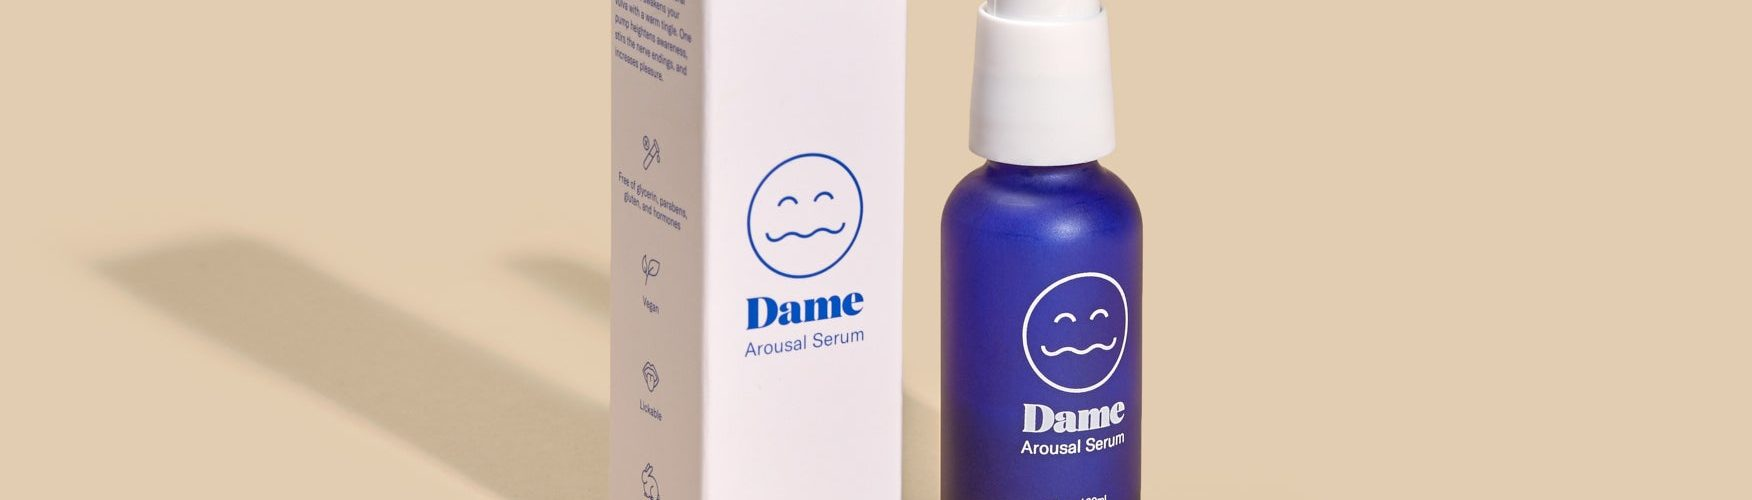 Dame Launches Arousal Serum With Natural Ingredients